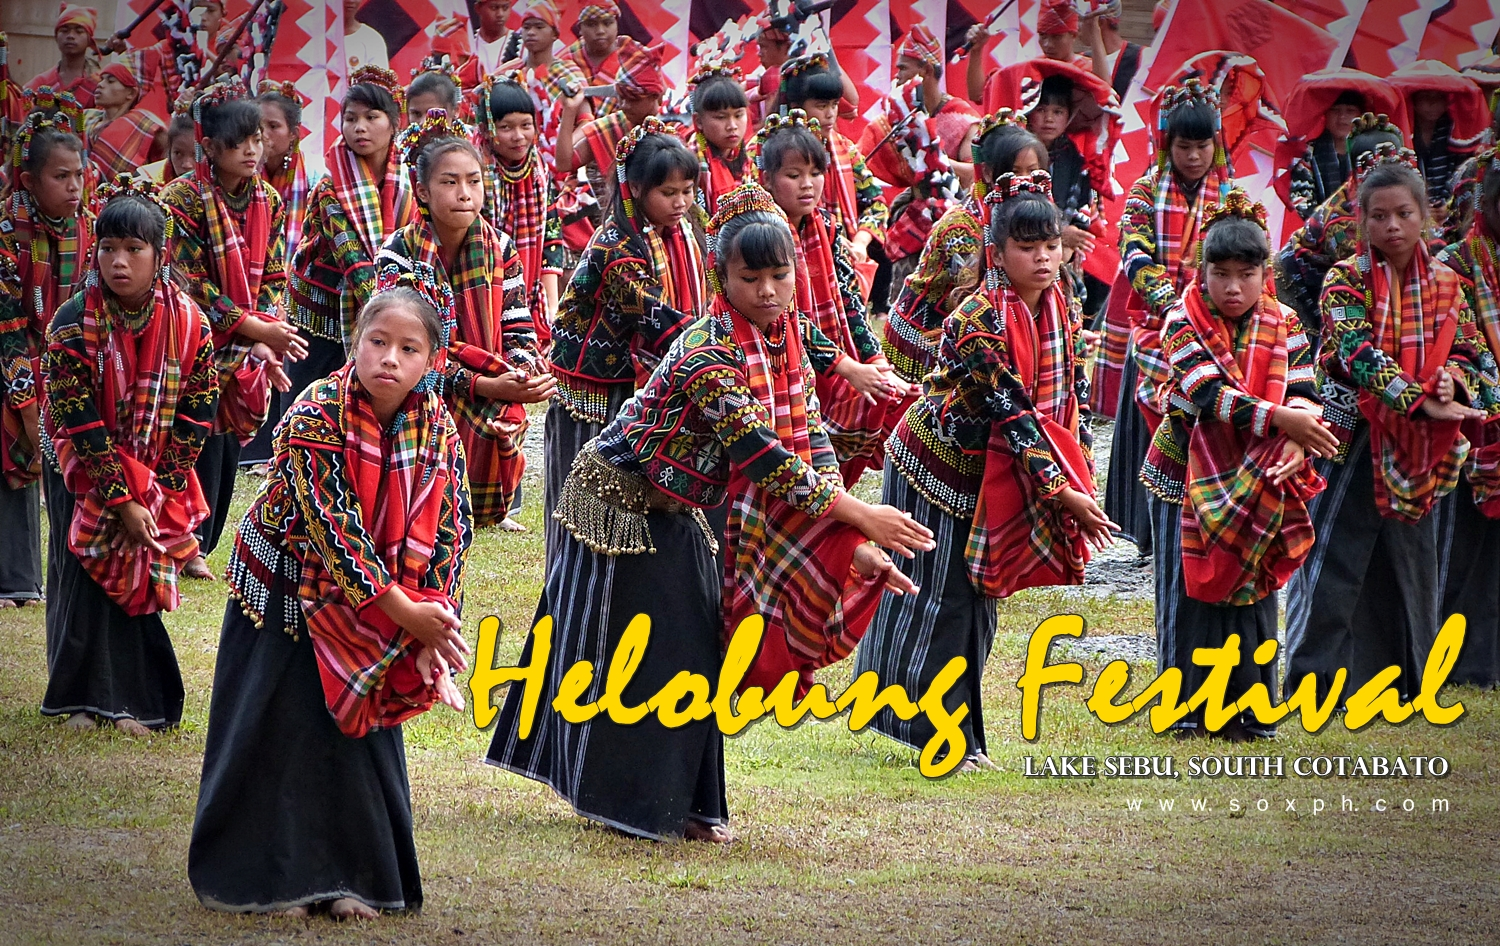 Helobung Festival 2017 Schedule of Activities | Lake Sebu | South ...